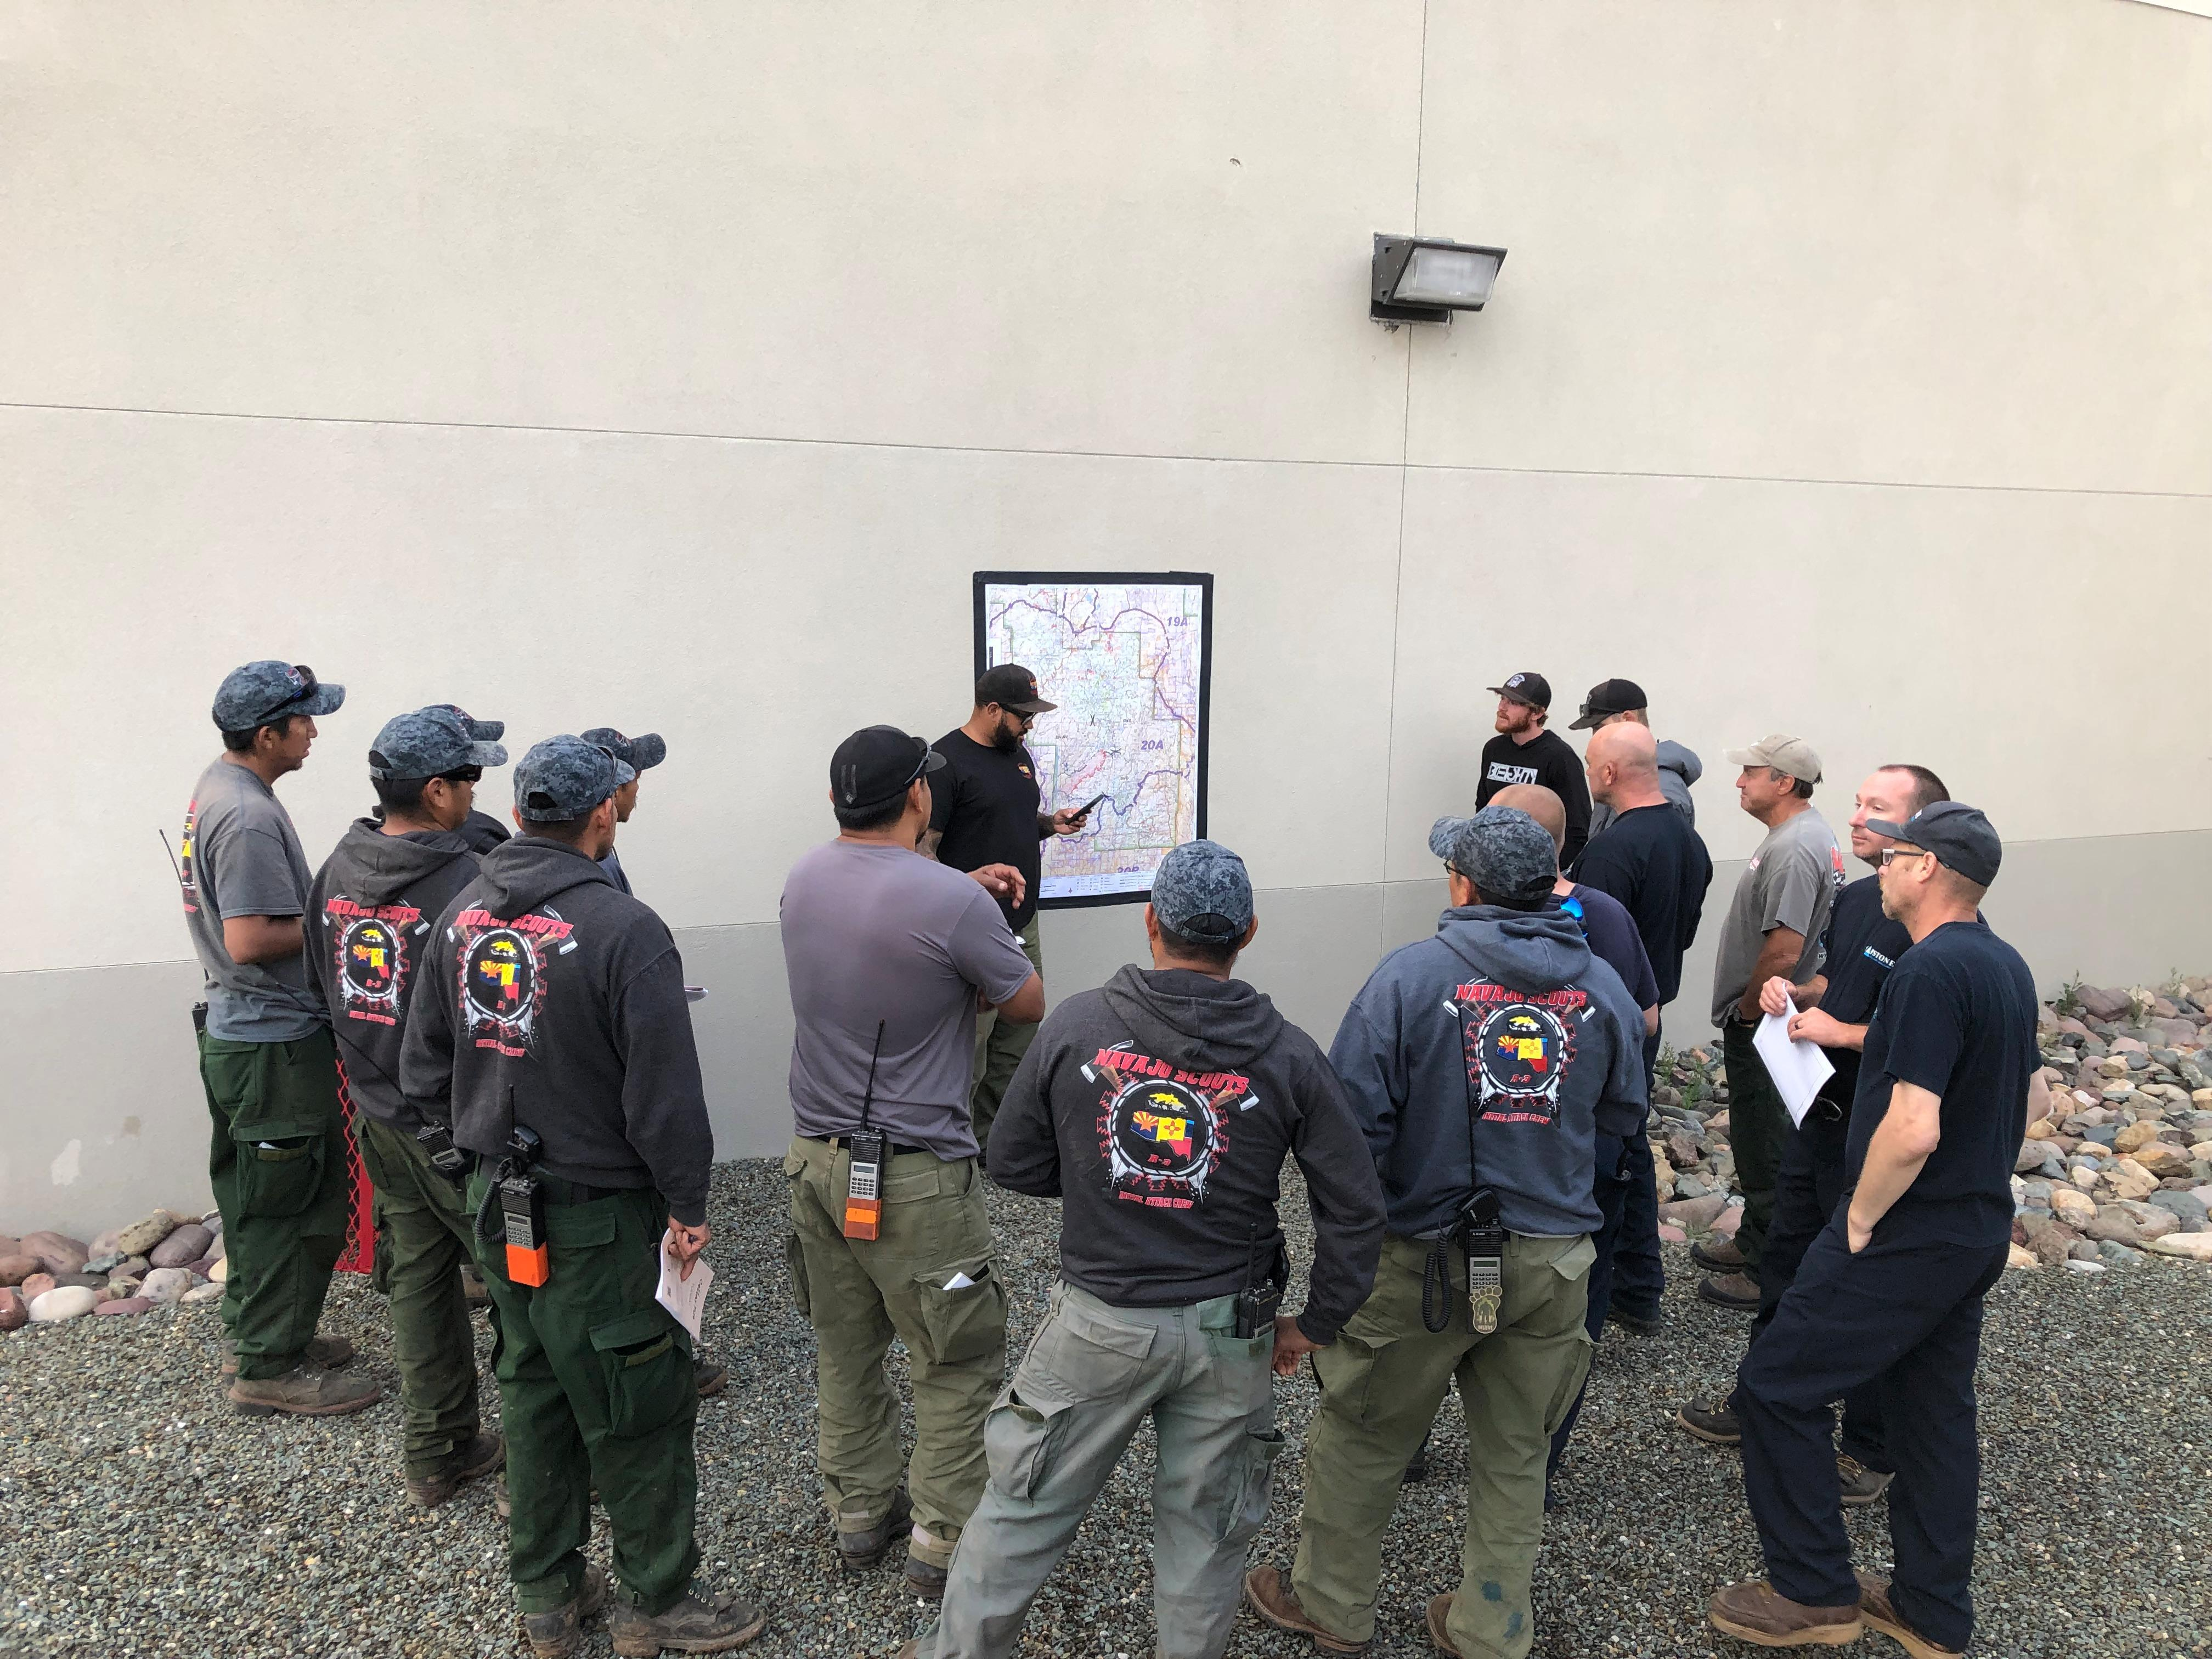 Firefighters meet after morning briefing to discuss their assignment for the day